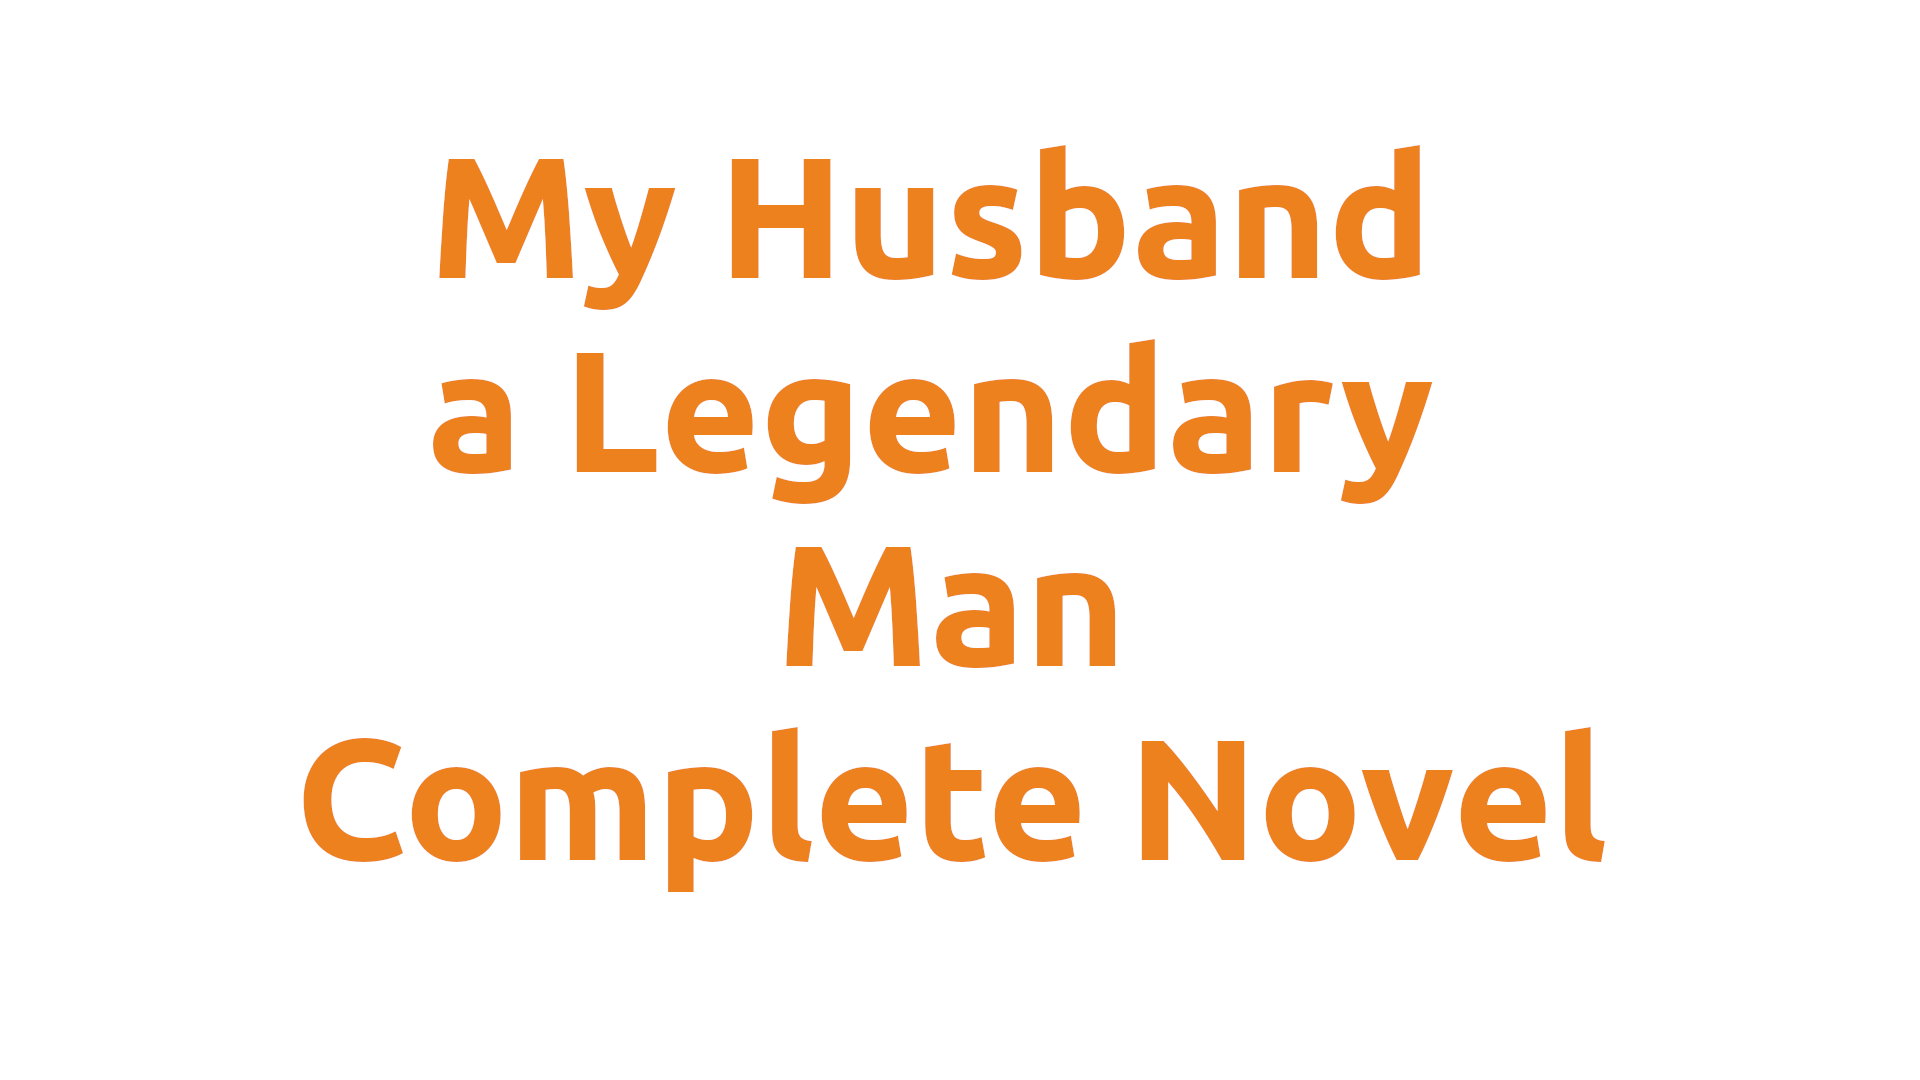 my husband a legendary man complete novel